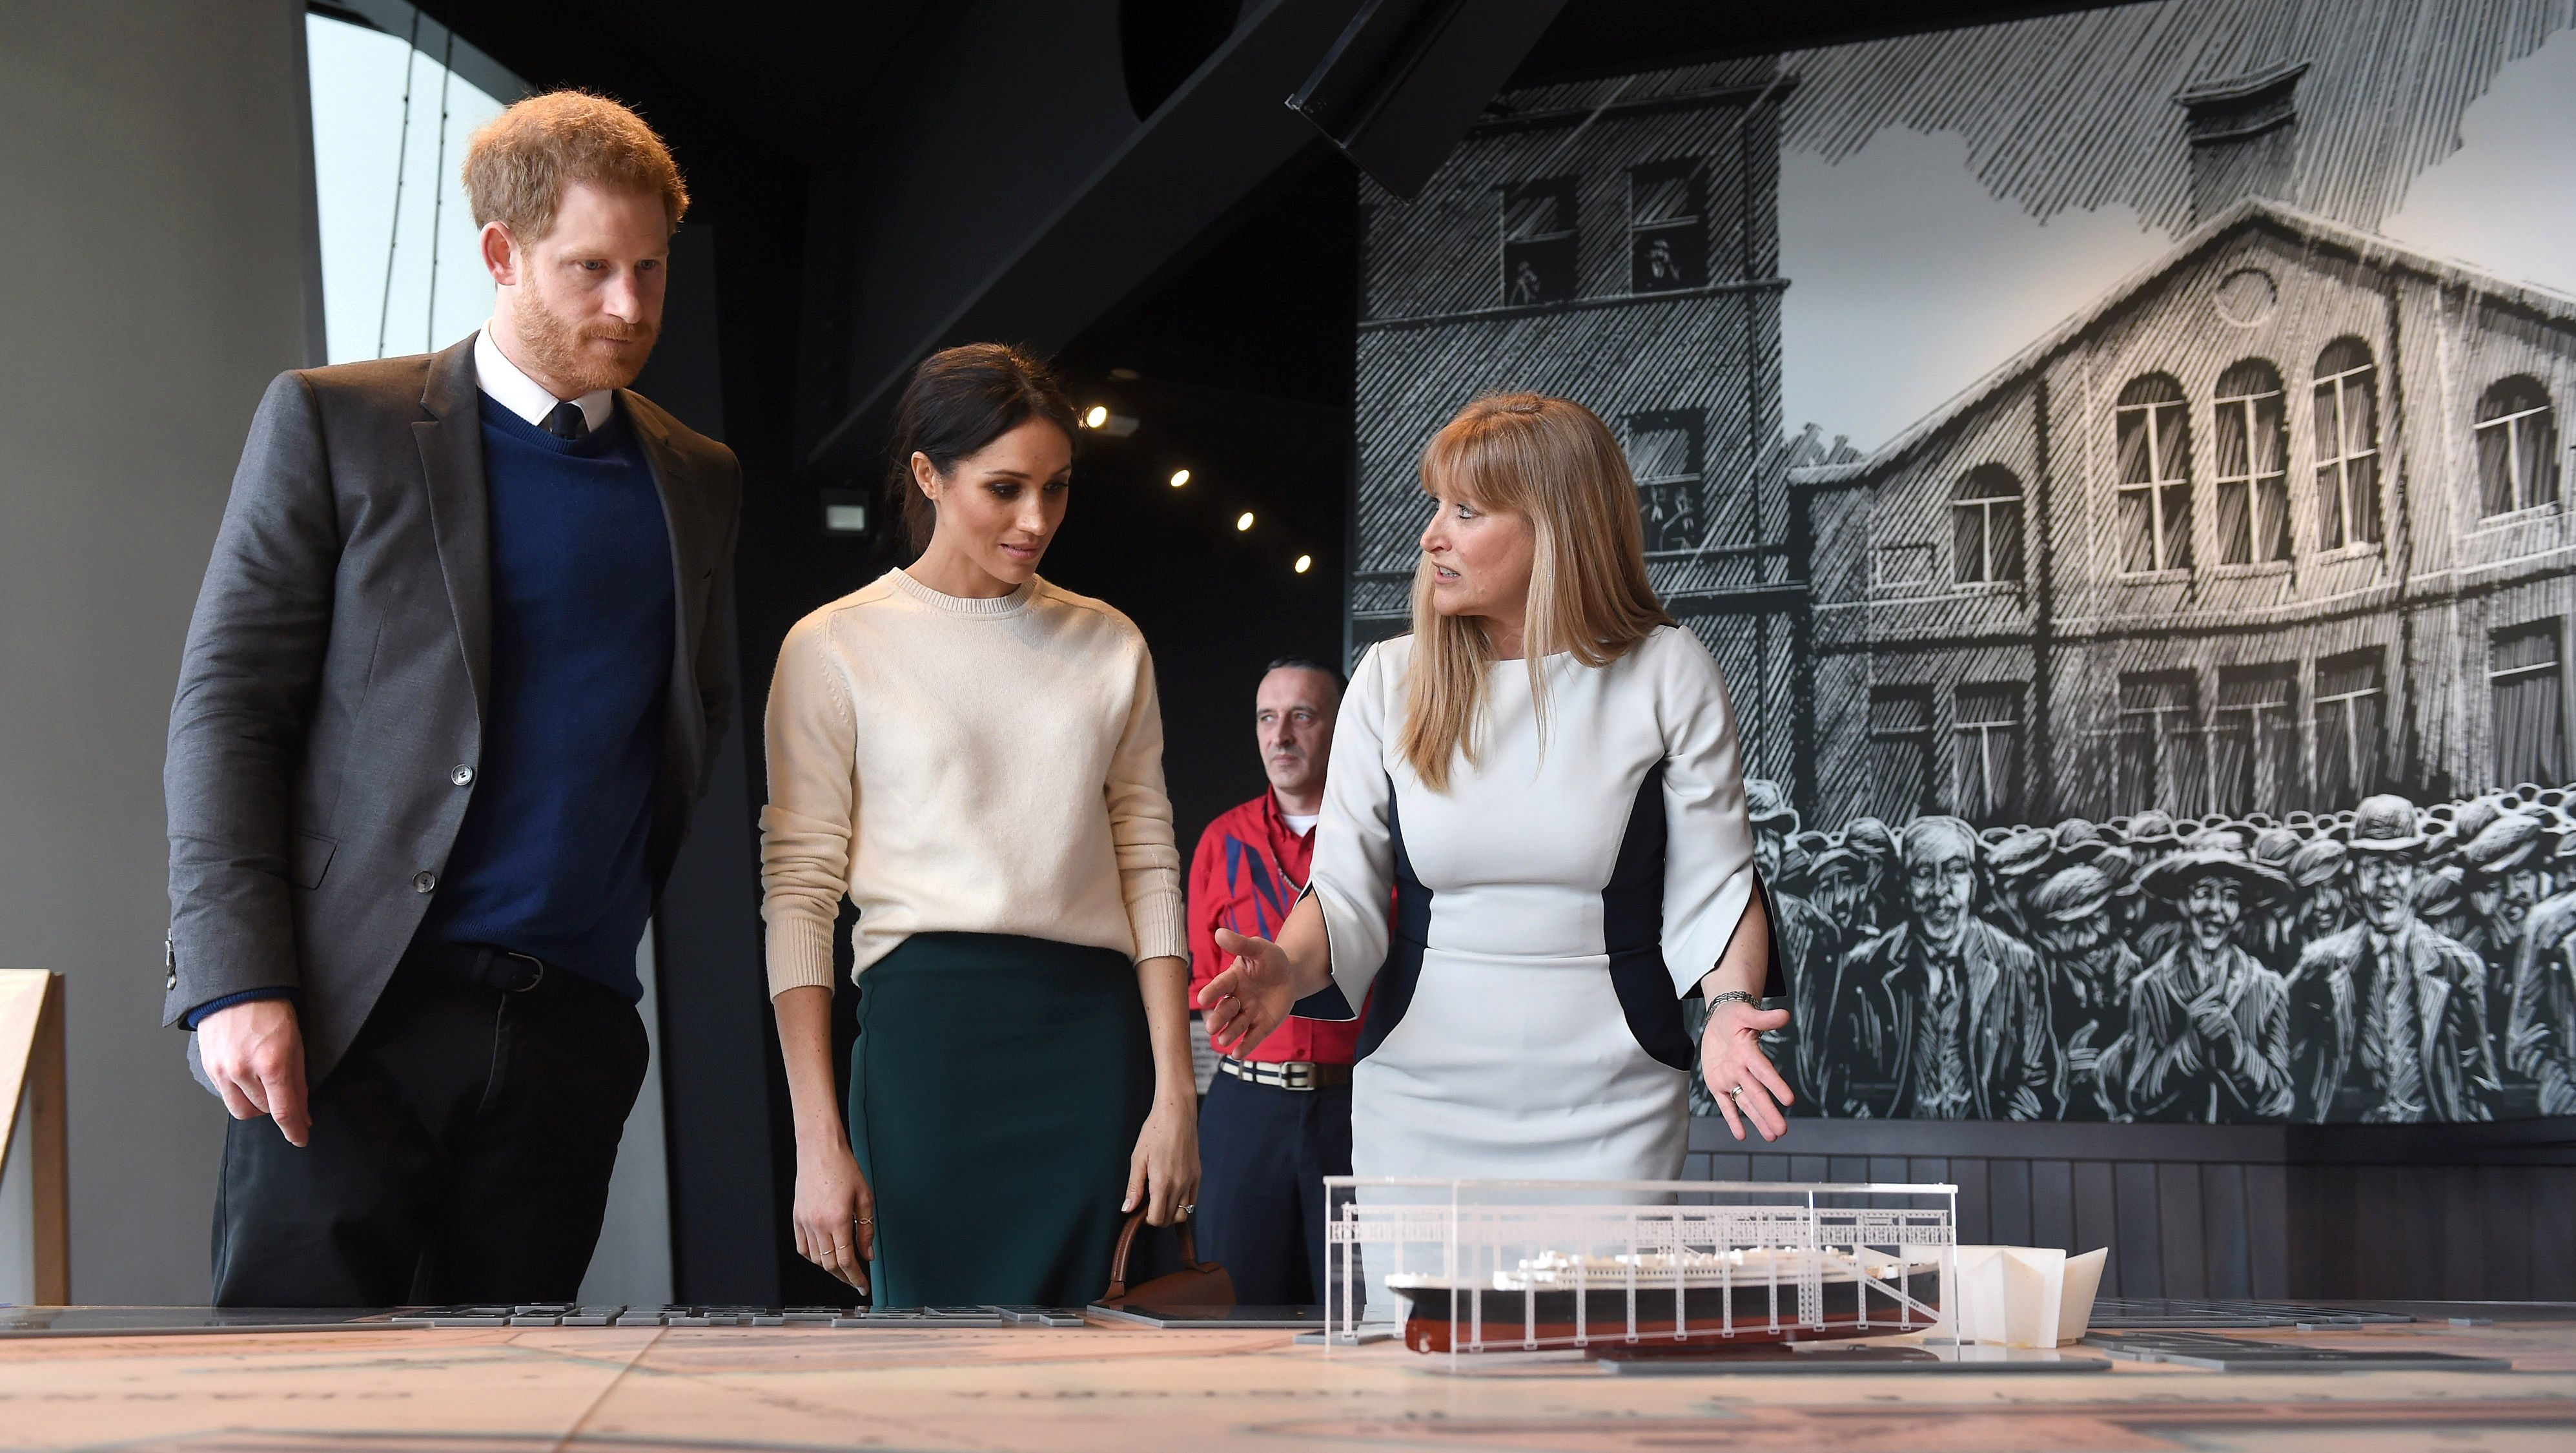 Prince Harry and Meghan Markle visit Titanic Belfast maritime museum in Belfast, Northern Ireland March 23, 2018.